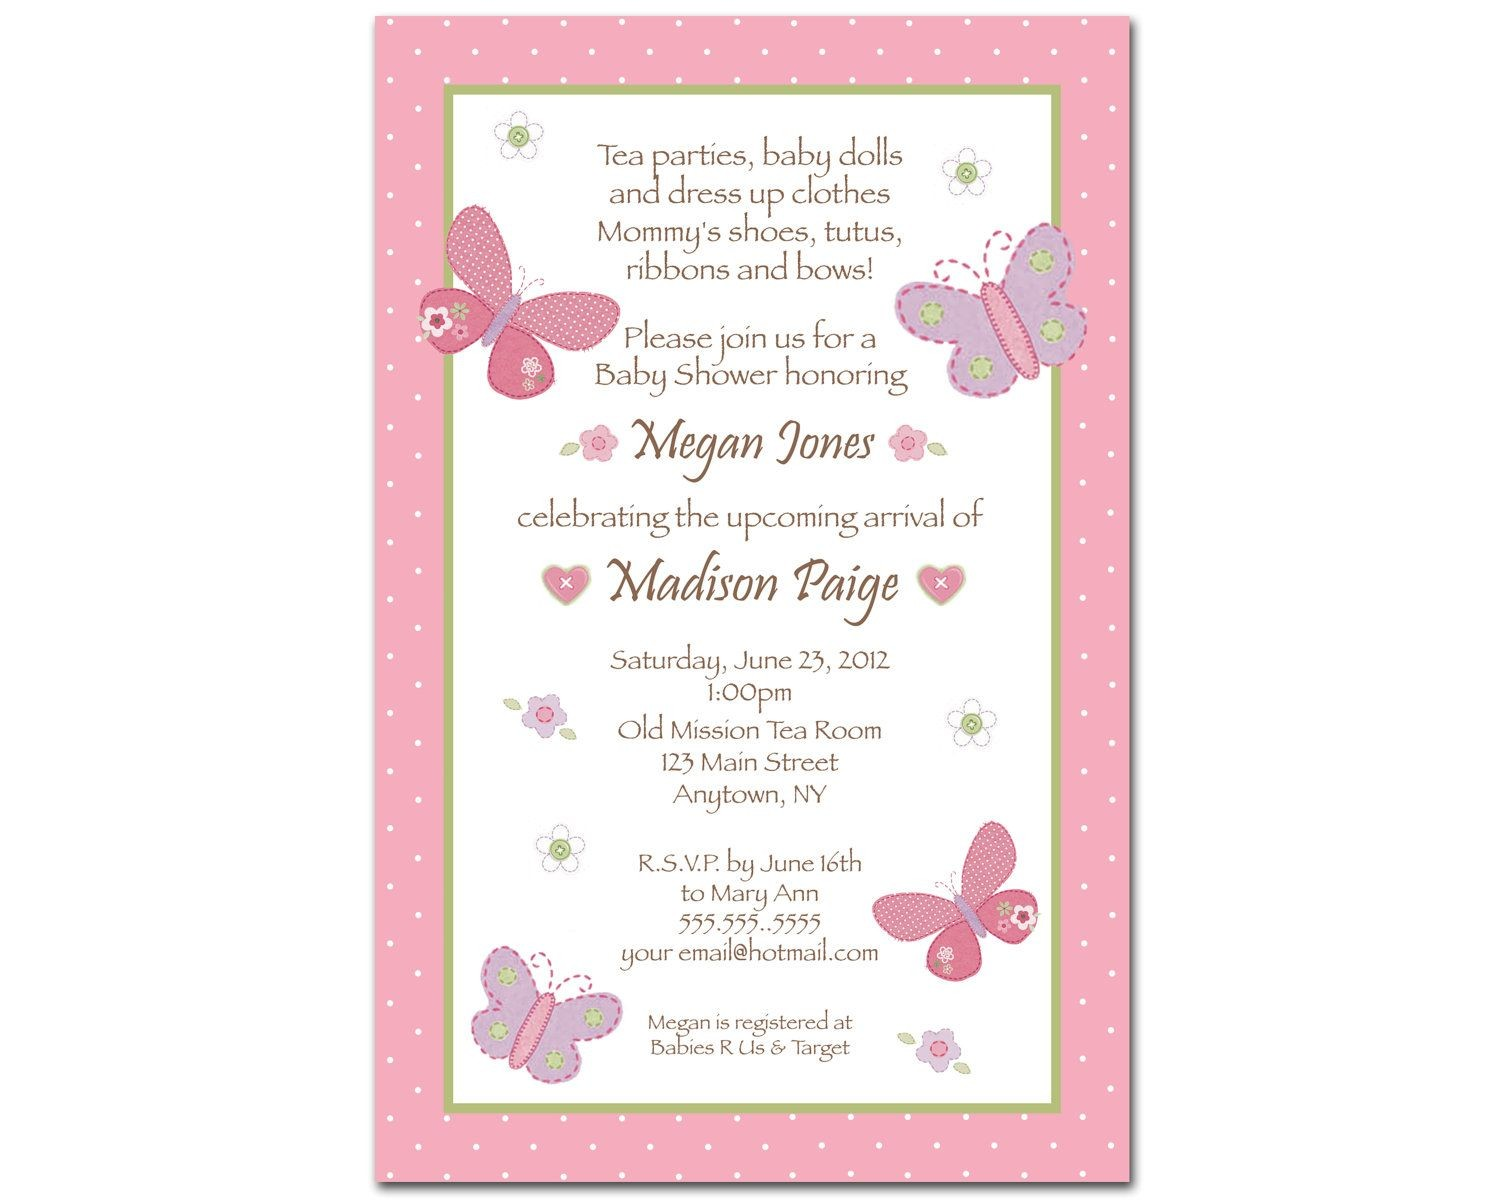 Full Size of Baby Shower:63+ Delightful Cheap Baby Shower Invitations Image Inspirations Cheap Baby Shower Invitations Baby Shower Greeting Cards Baby Shower Registry Baby Shower In Baby Shower Wreath Couples Baby Shower Invitation Wording Beautiful Carter S Baby Baby Shower Invitations Butterfly Flowers